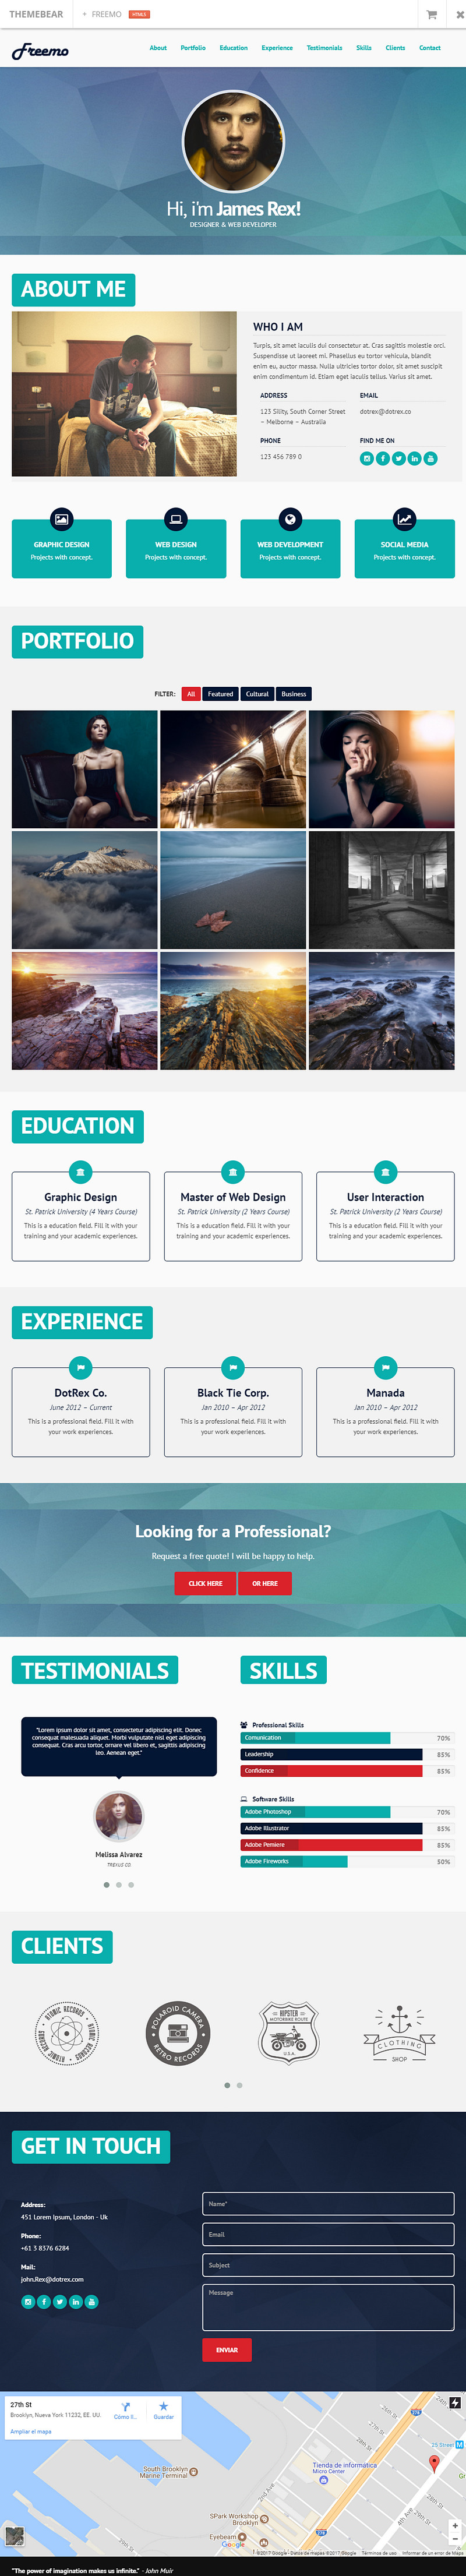 Freemo Bootstrap Resume Portfolio Theme Bypeople